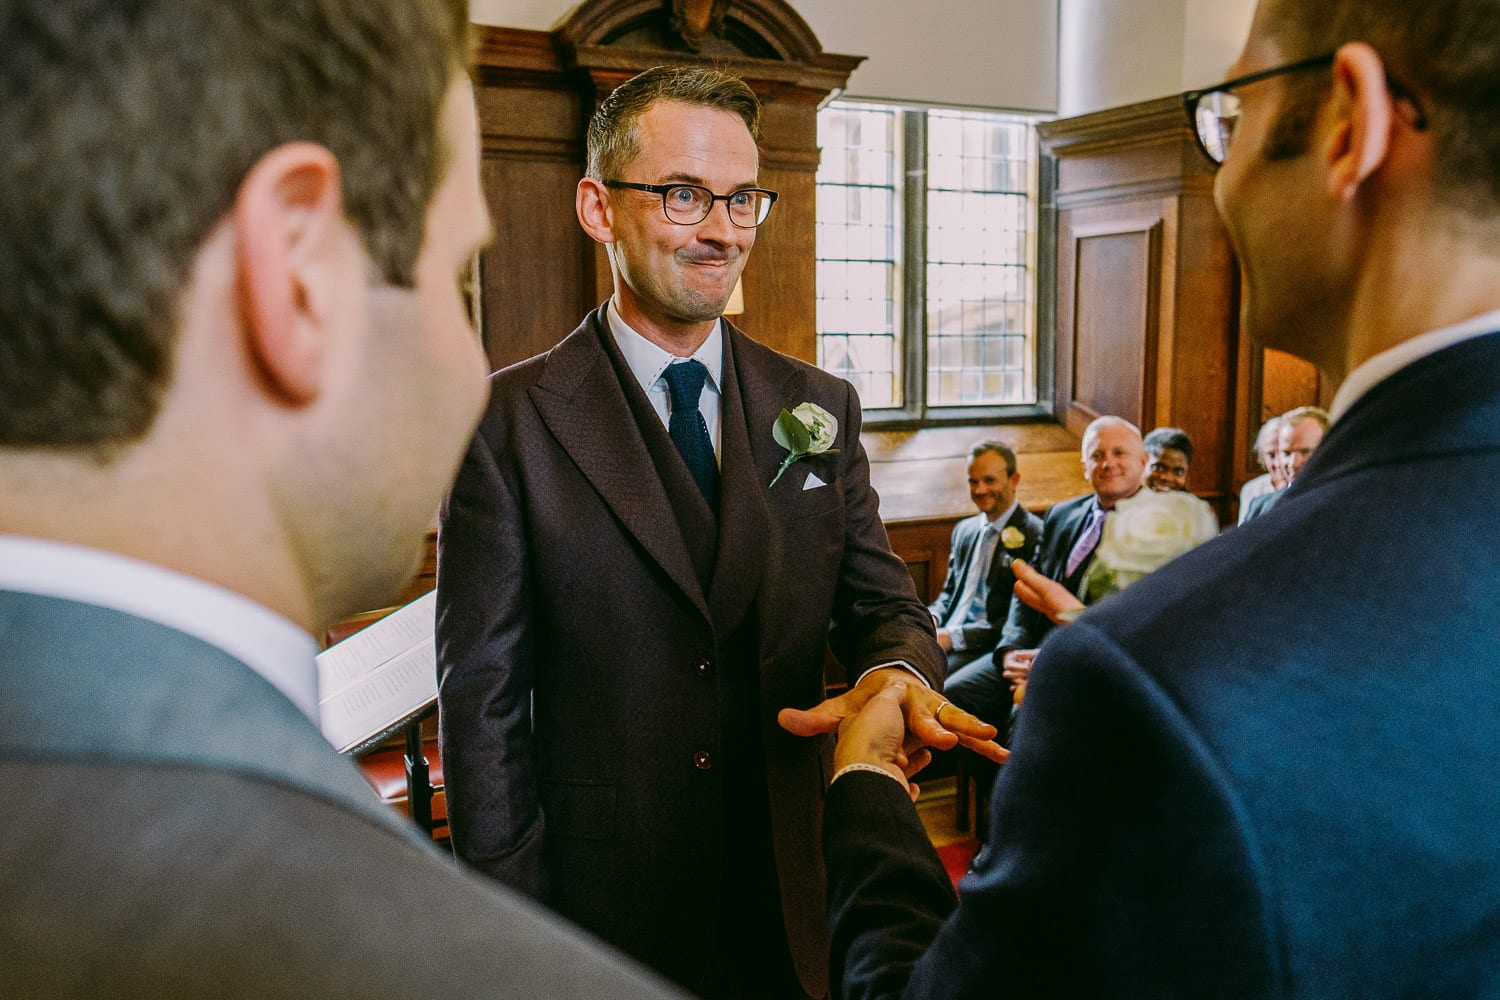 Same sex wedding ceremony at Pembroke college Cambridge